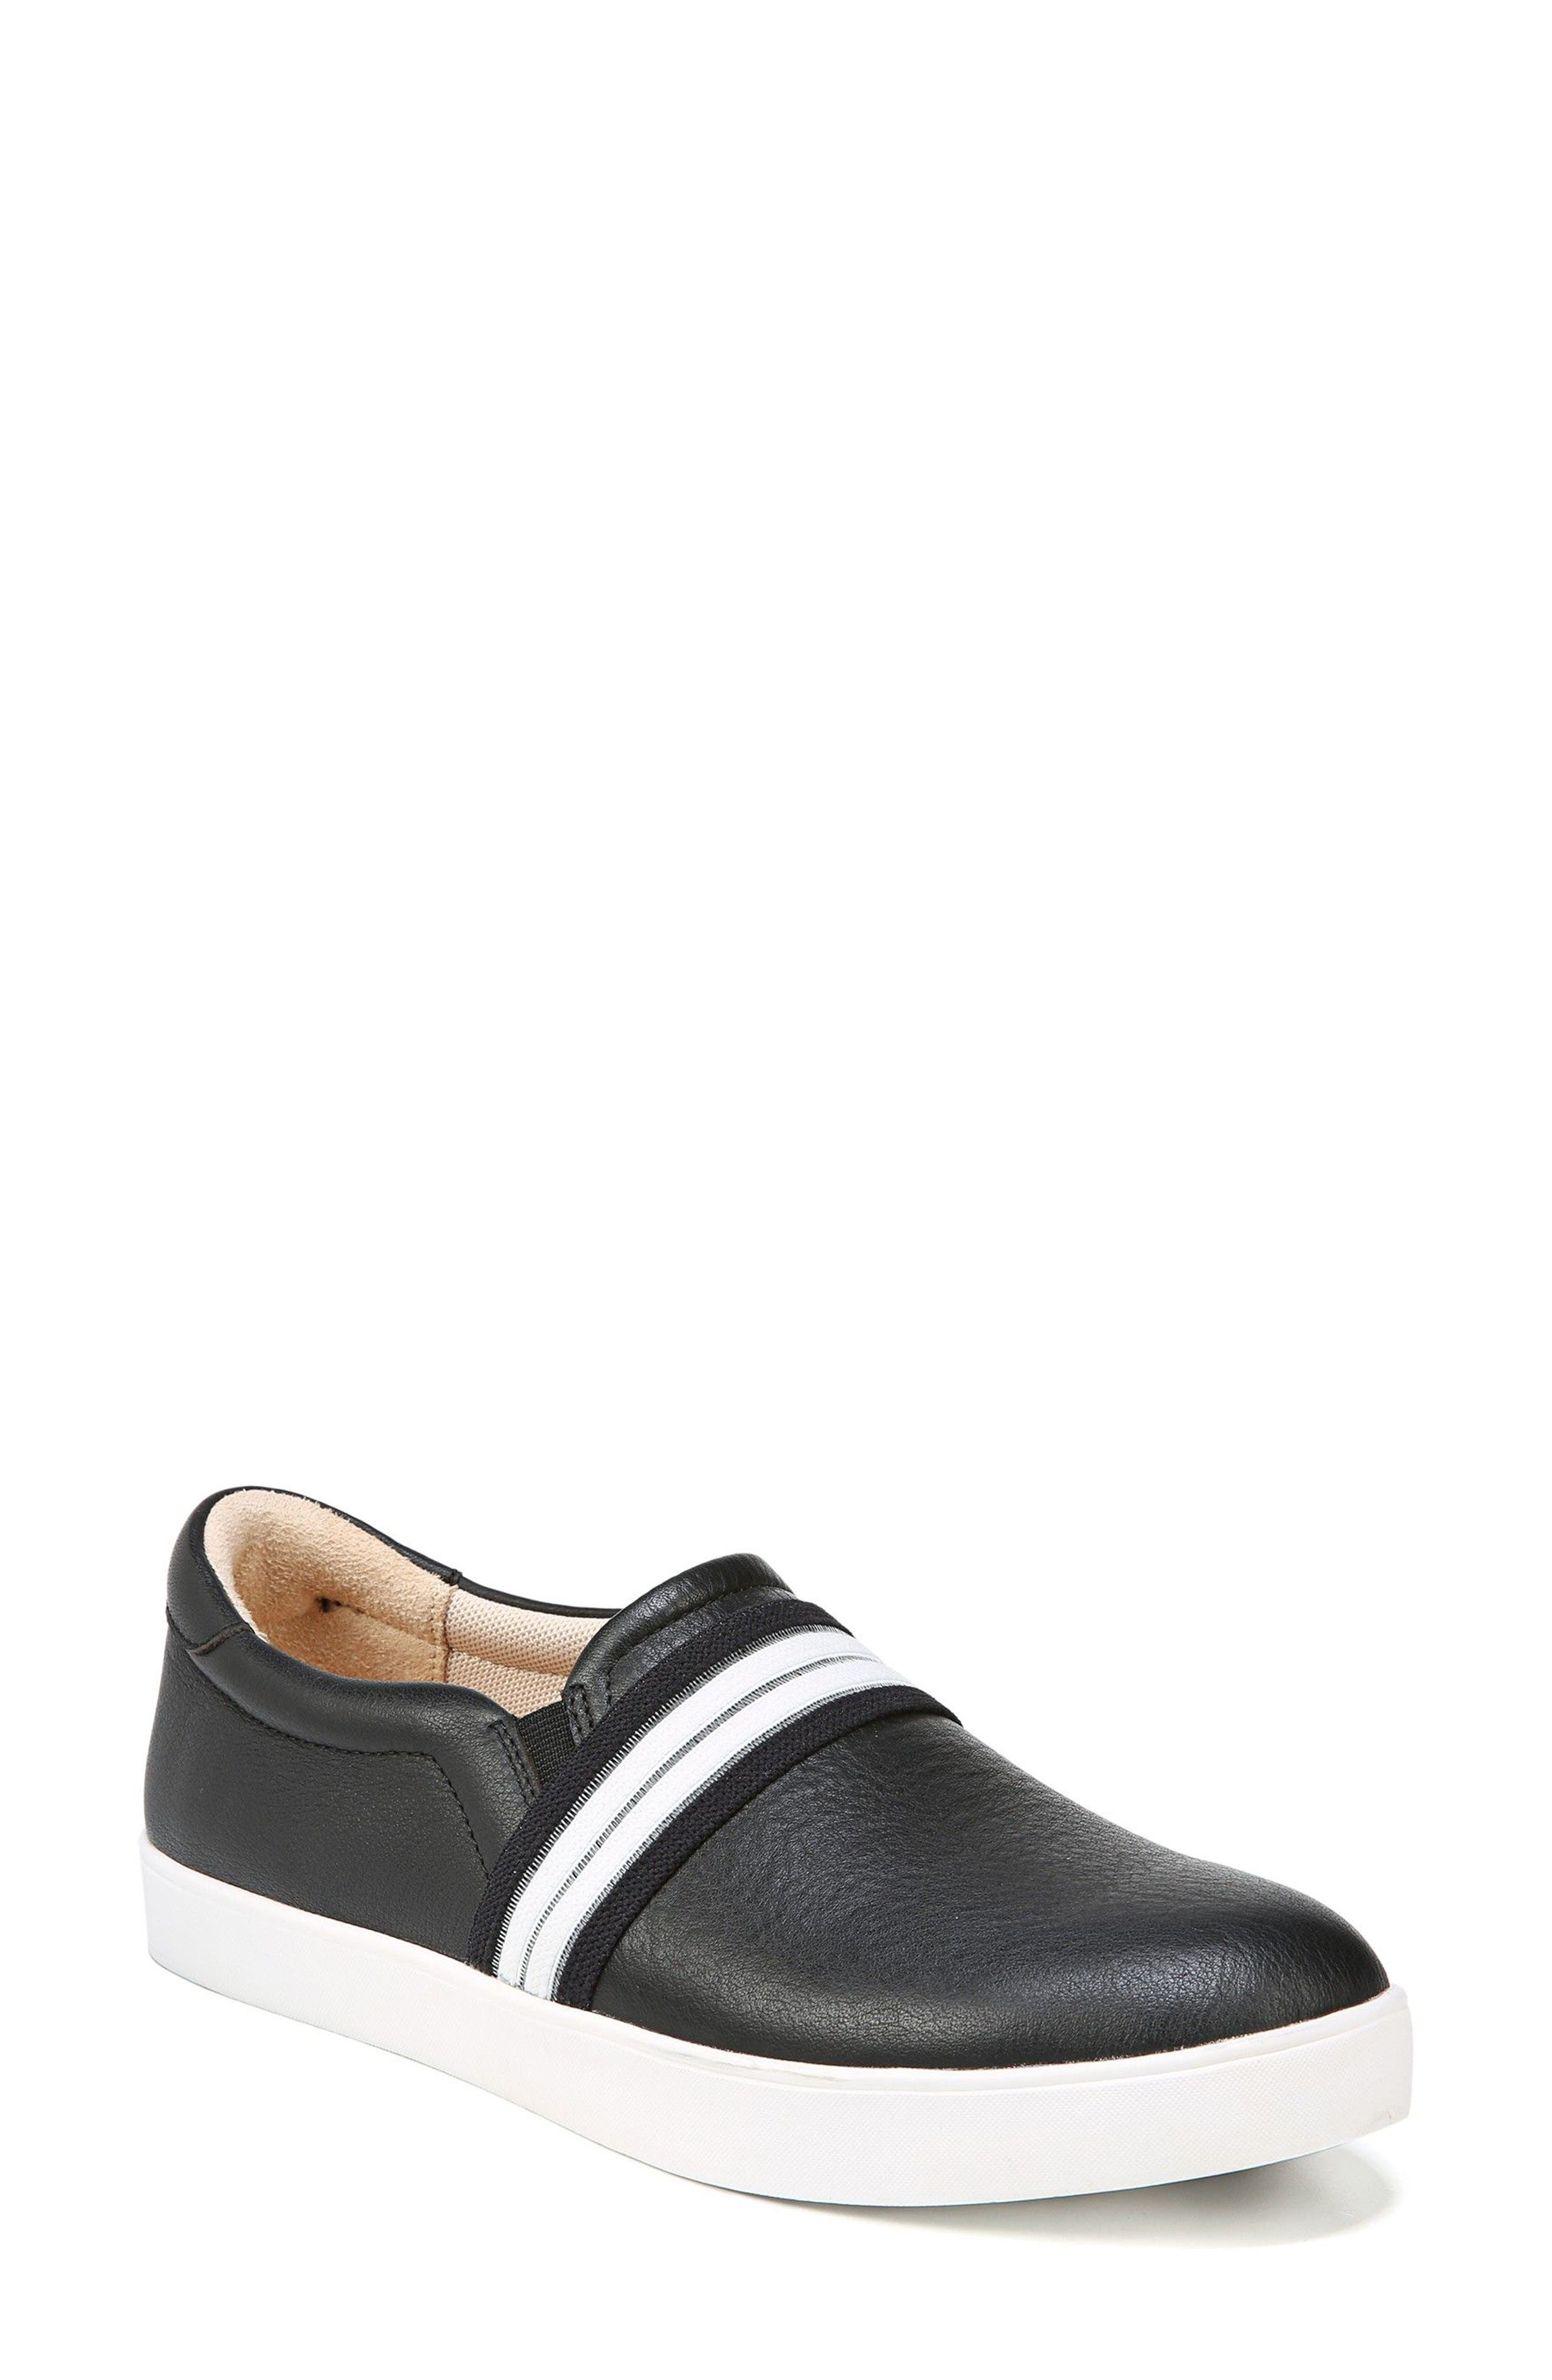 Scout Slip-On Sneaker,                             Main thumbnail 1, color,                             BLACK LEATHER 2